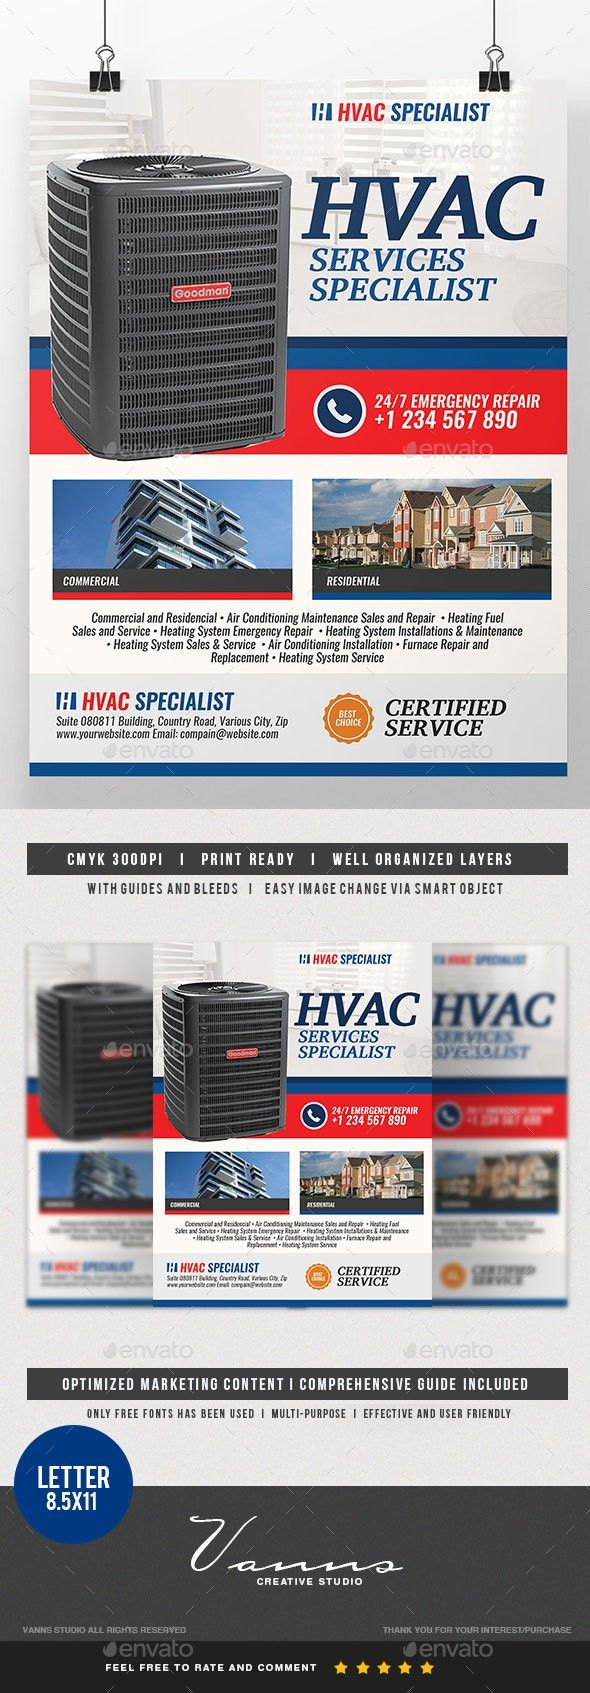 Air Air Conditioning Air Filter Compressor Cool Cooling Flyer Fresh Heat Heating Home Heating Maintenance Flyer Design Templates Flyer Hvac Services